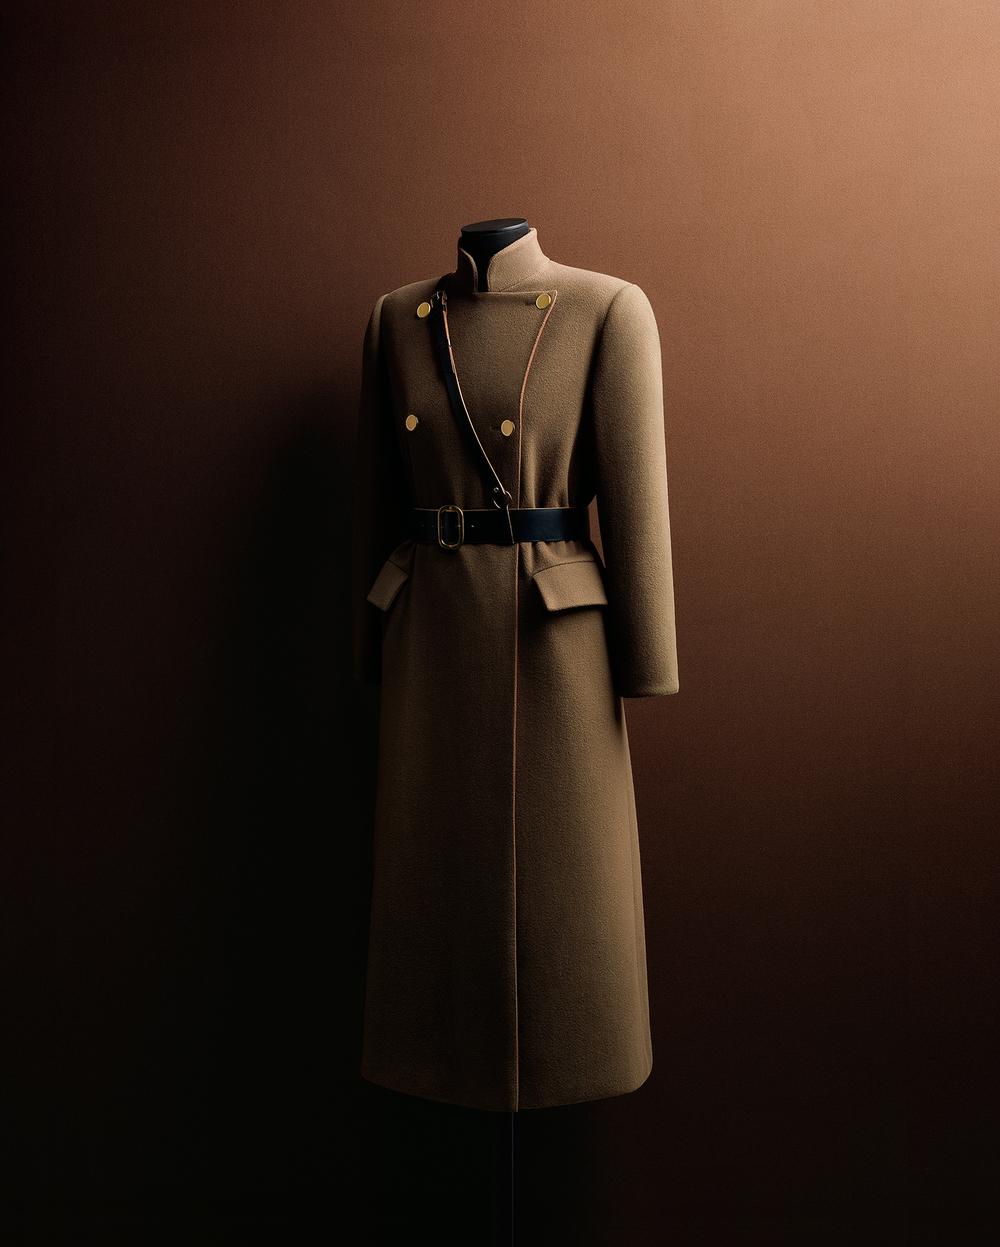 the_tree_mag-coats-by-maxmara-by-dhyan-bodha-derasmo-g-10.jpg